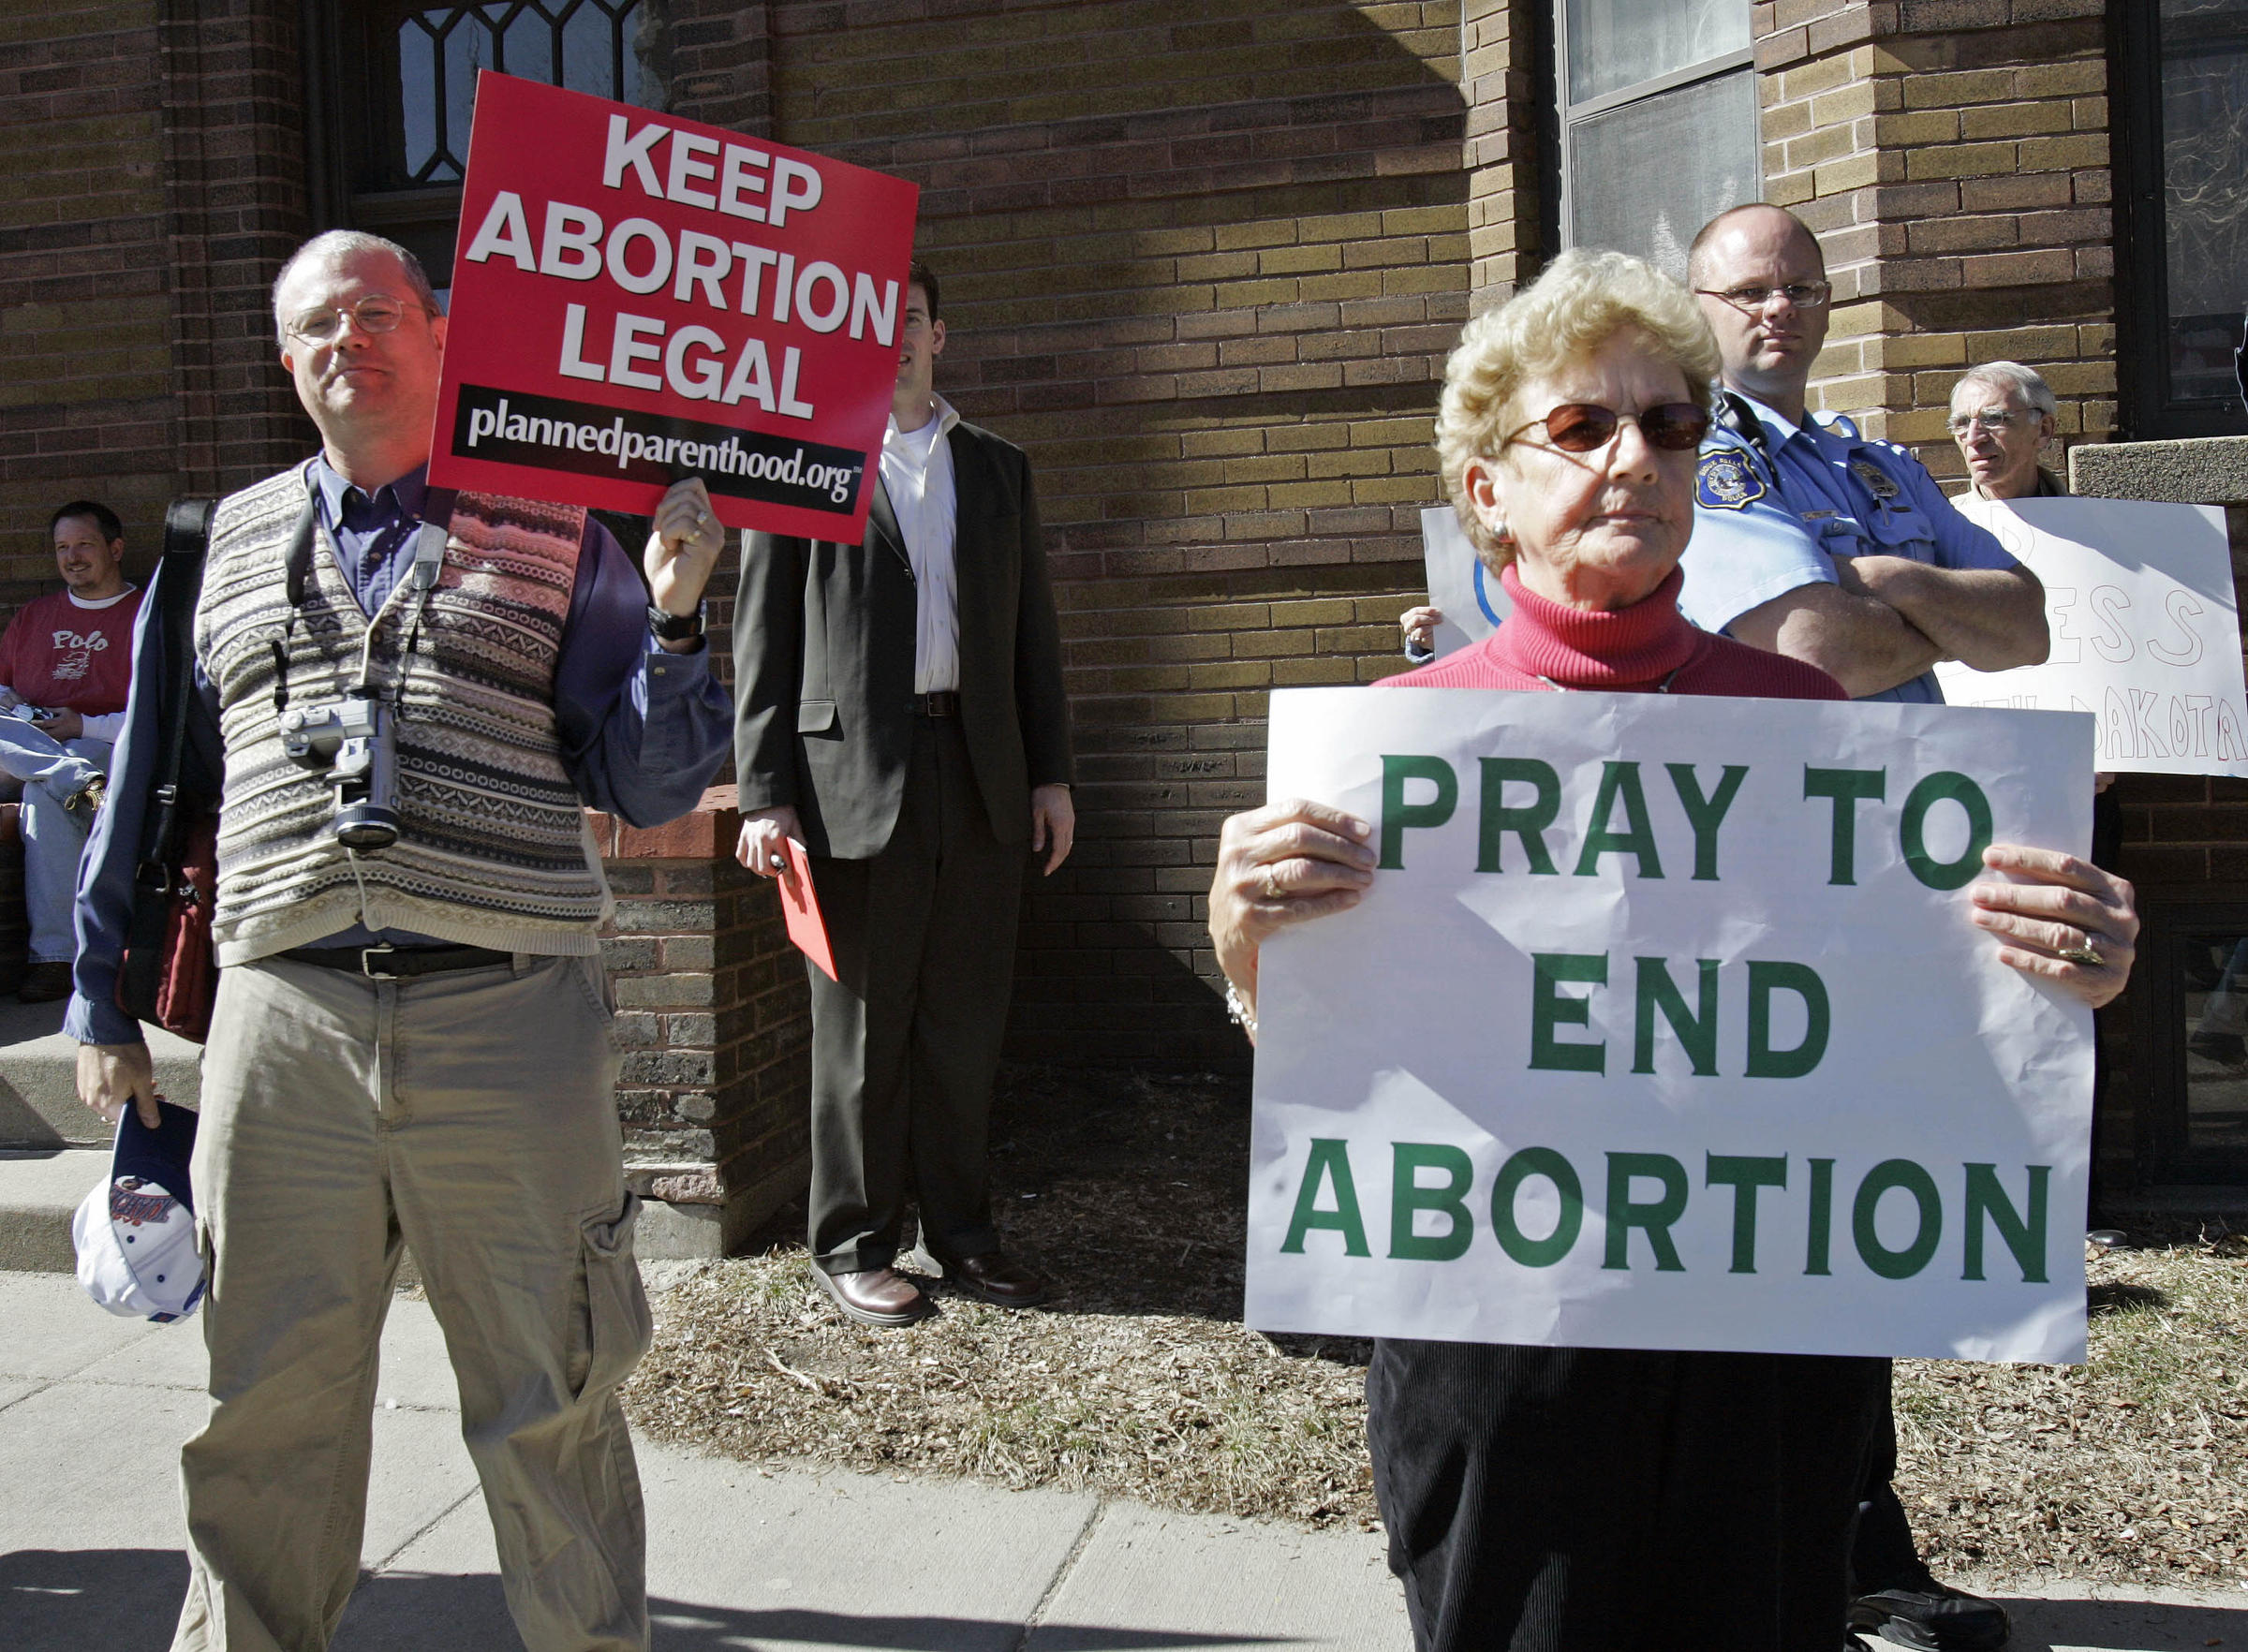 Pennsylvania Senate OKs 20-Week Abortion Ban; Veto Awaits ...